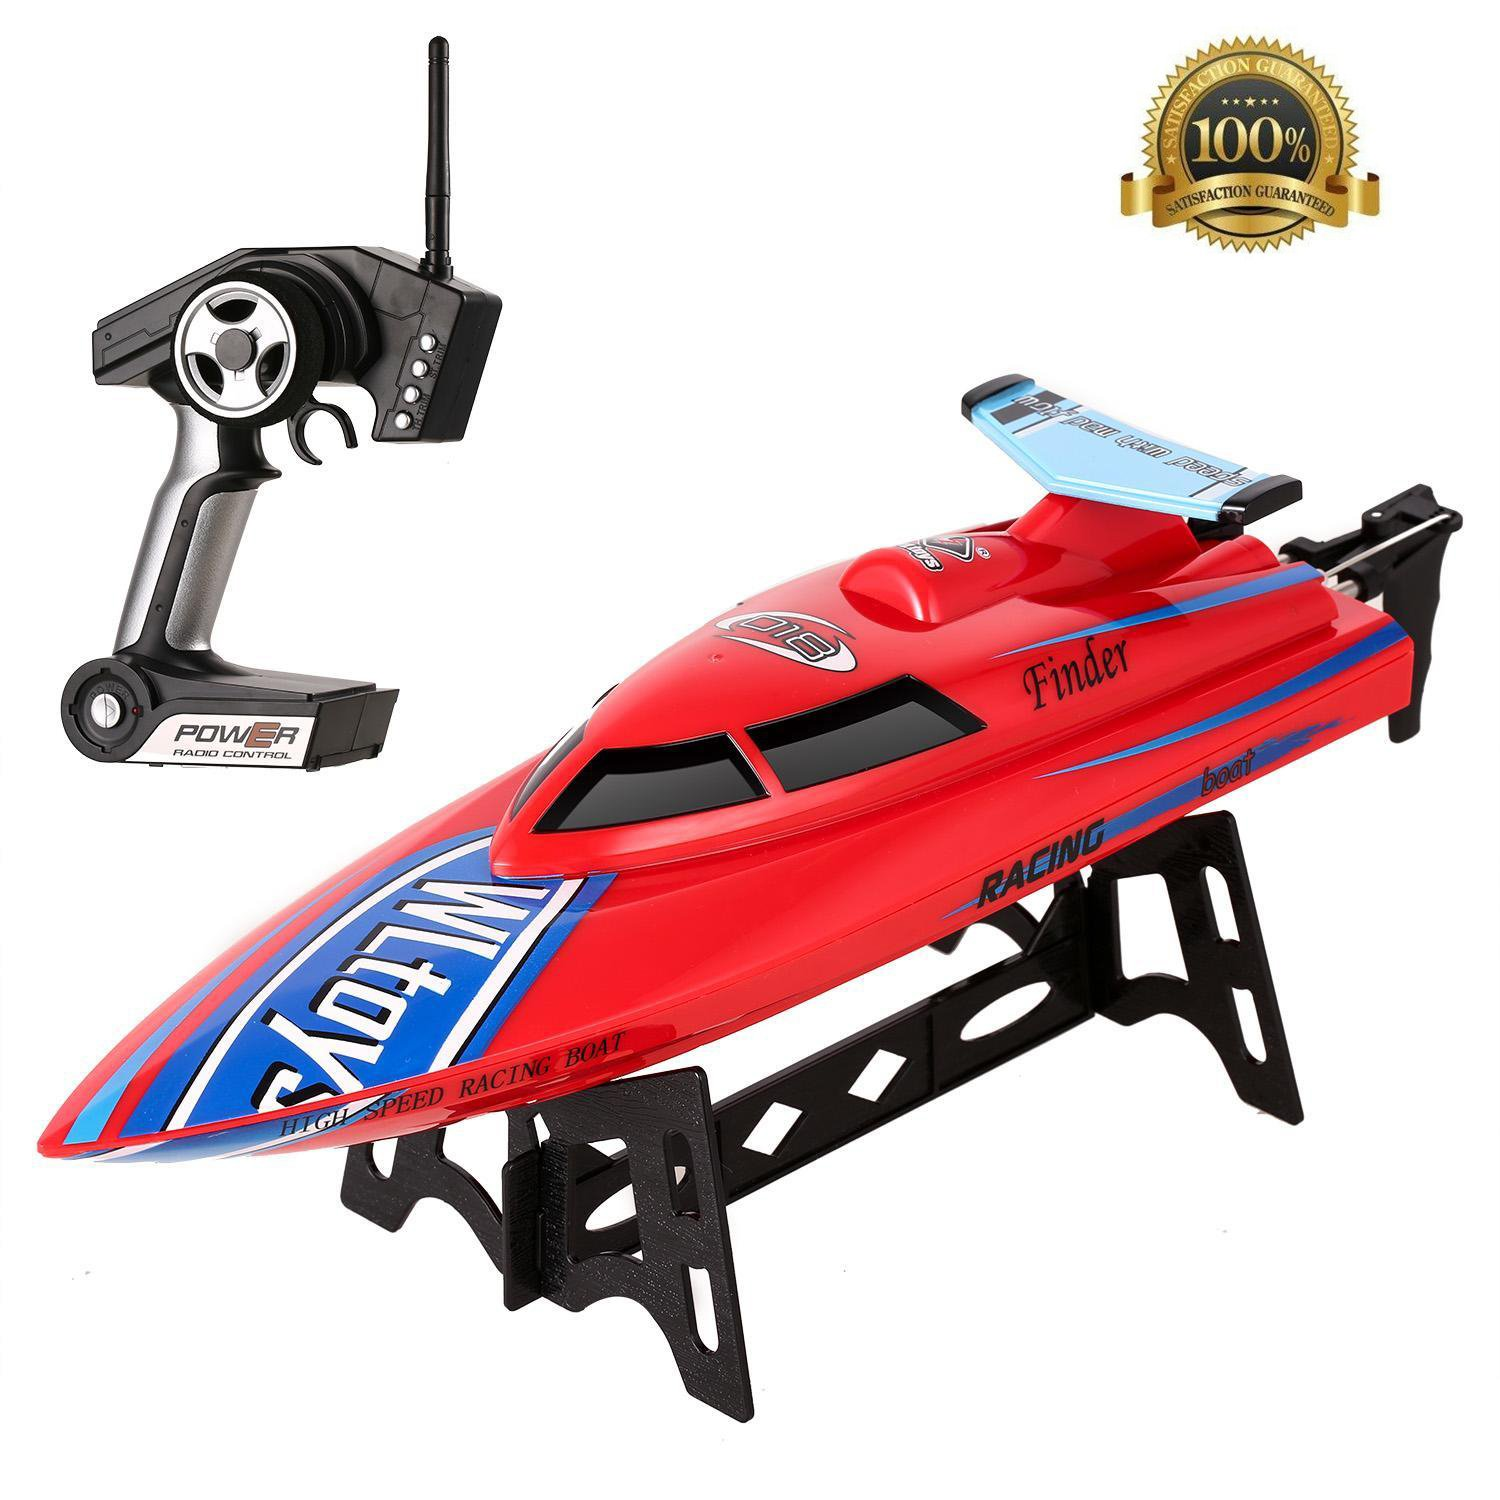 RCボート、2.4 G Remote Controlled Electric Racing Boat with 24 km / h High Speed forプール湖 レッド 5031 B077JY7W72 レッド レッド